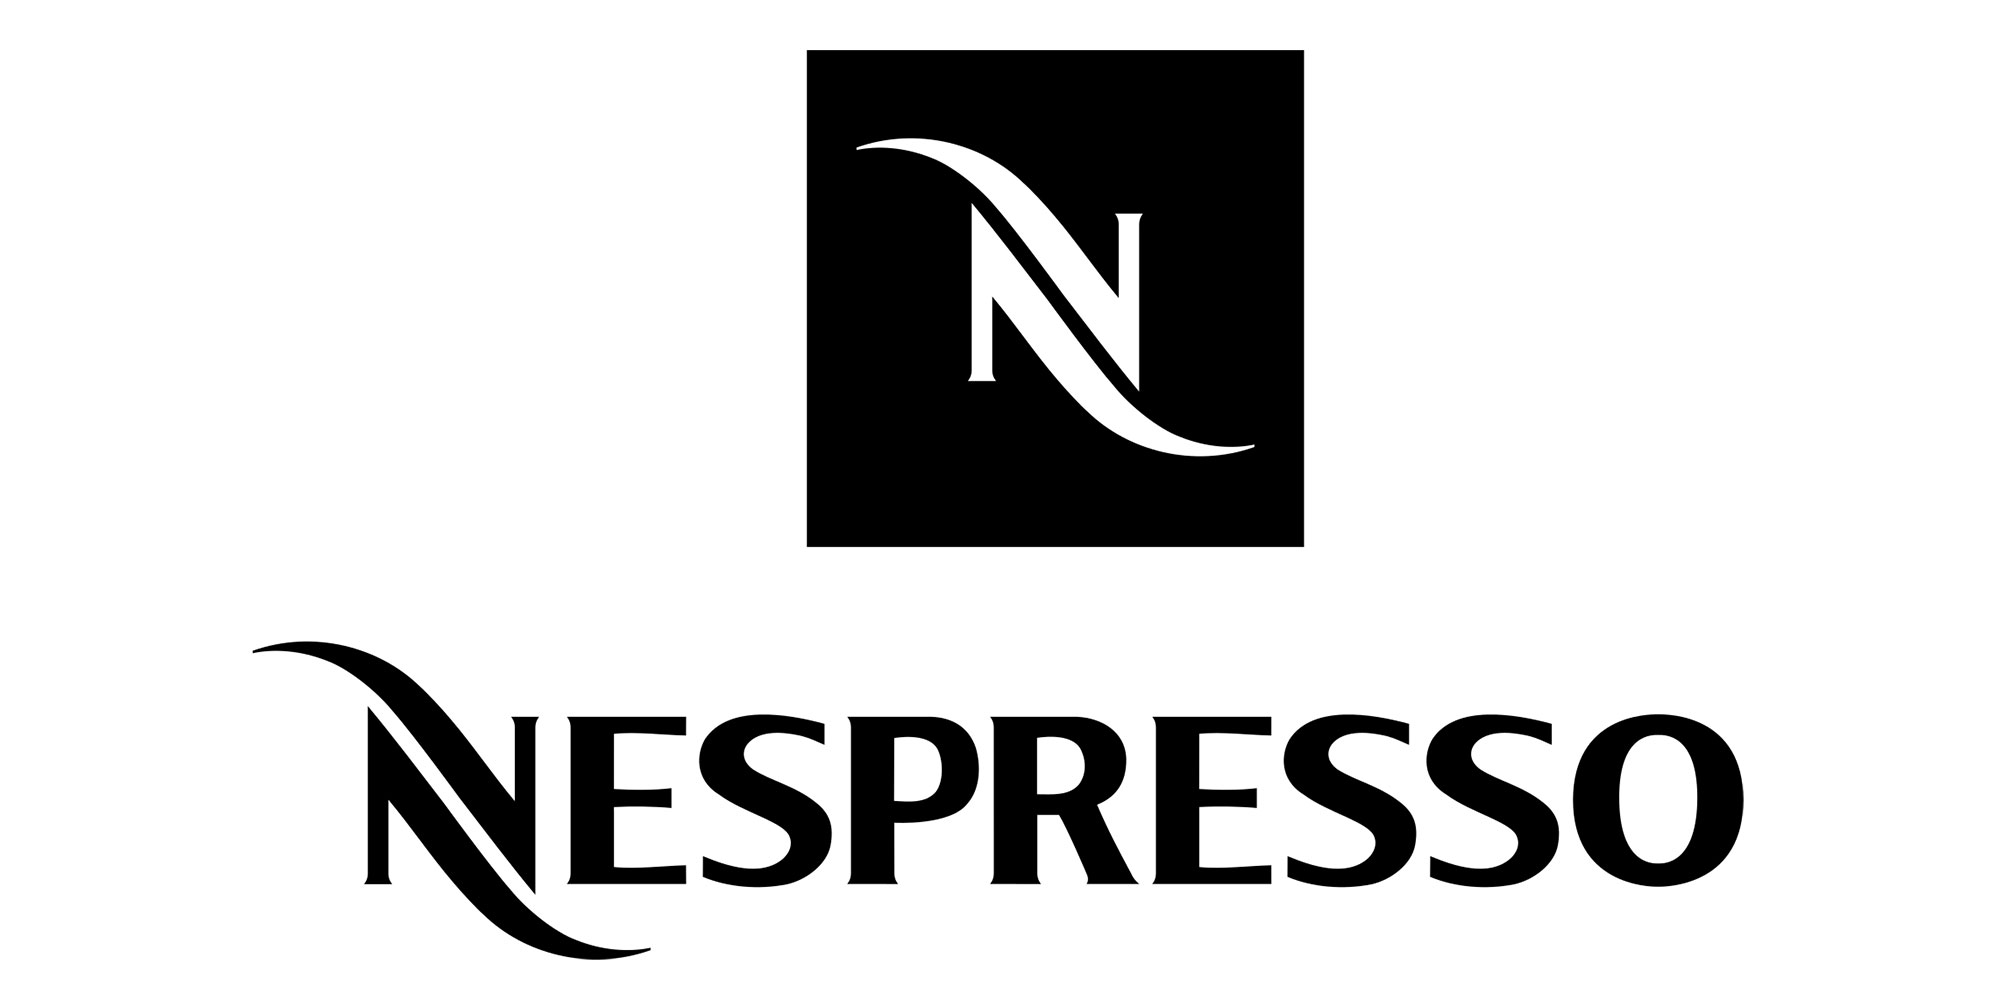 Magasin Nespresso Grenoble - Alimentation à Grenoble